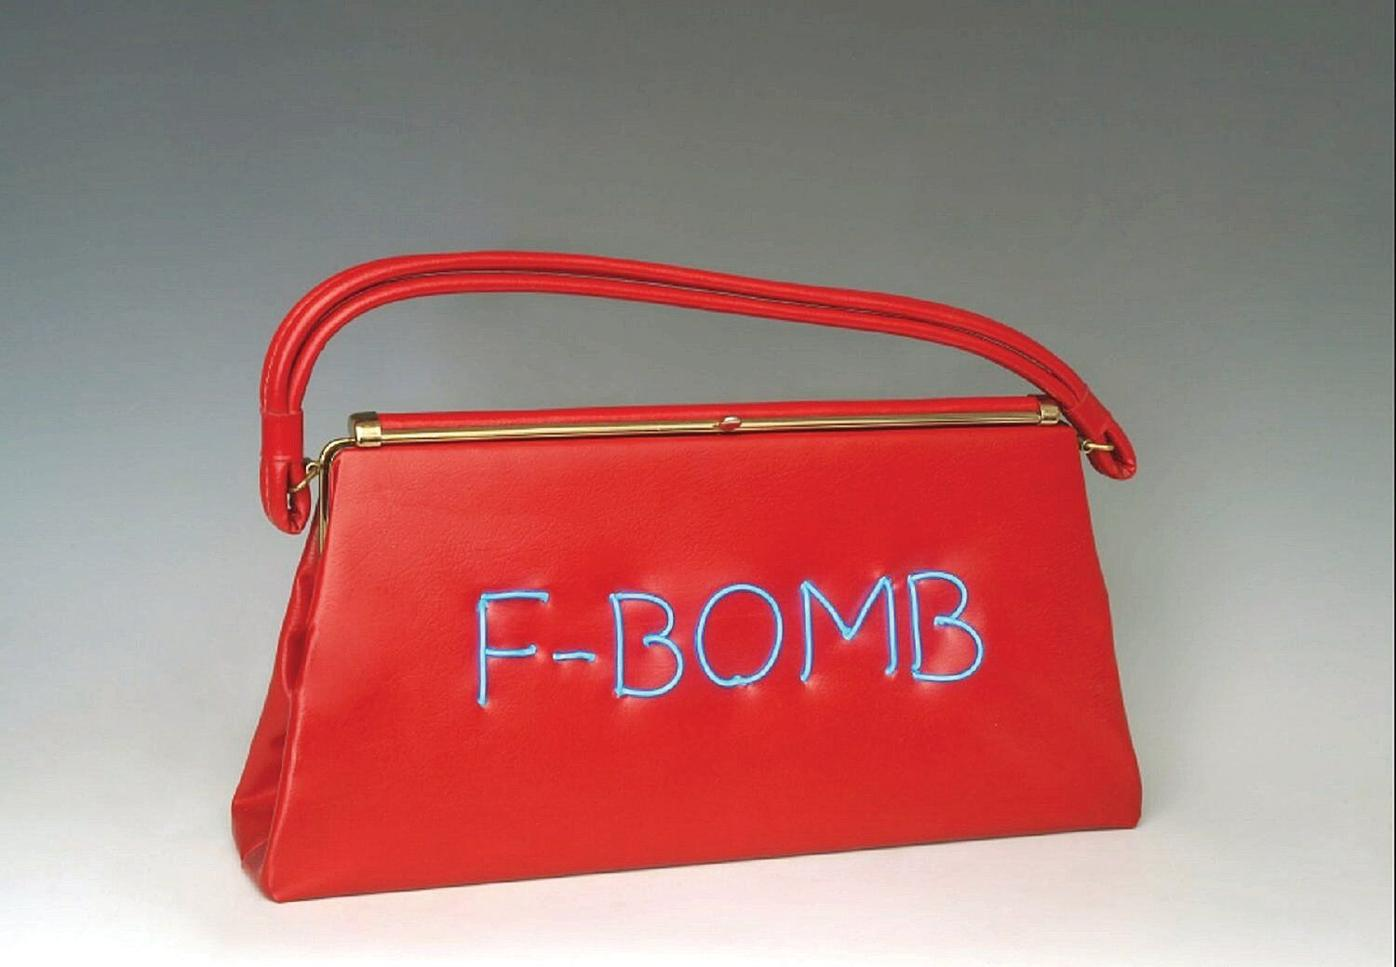 Dropping an 'F-bomb'